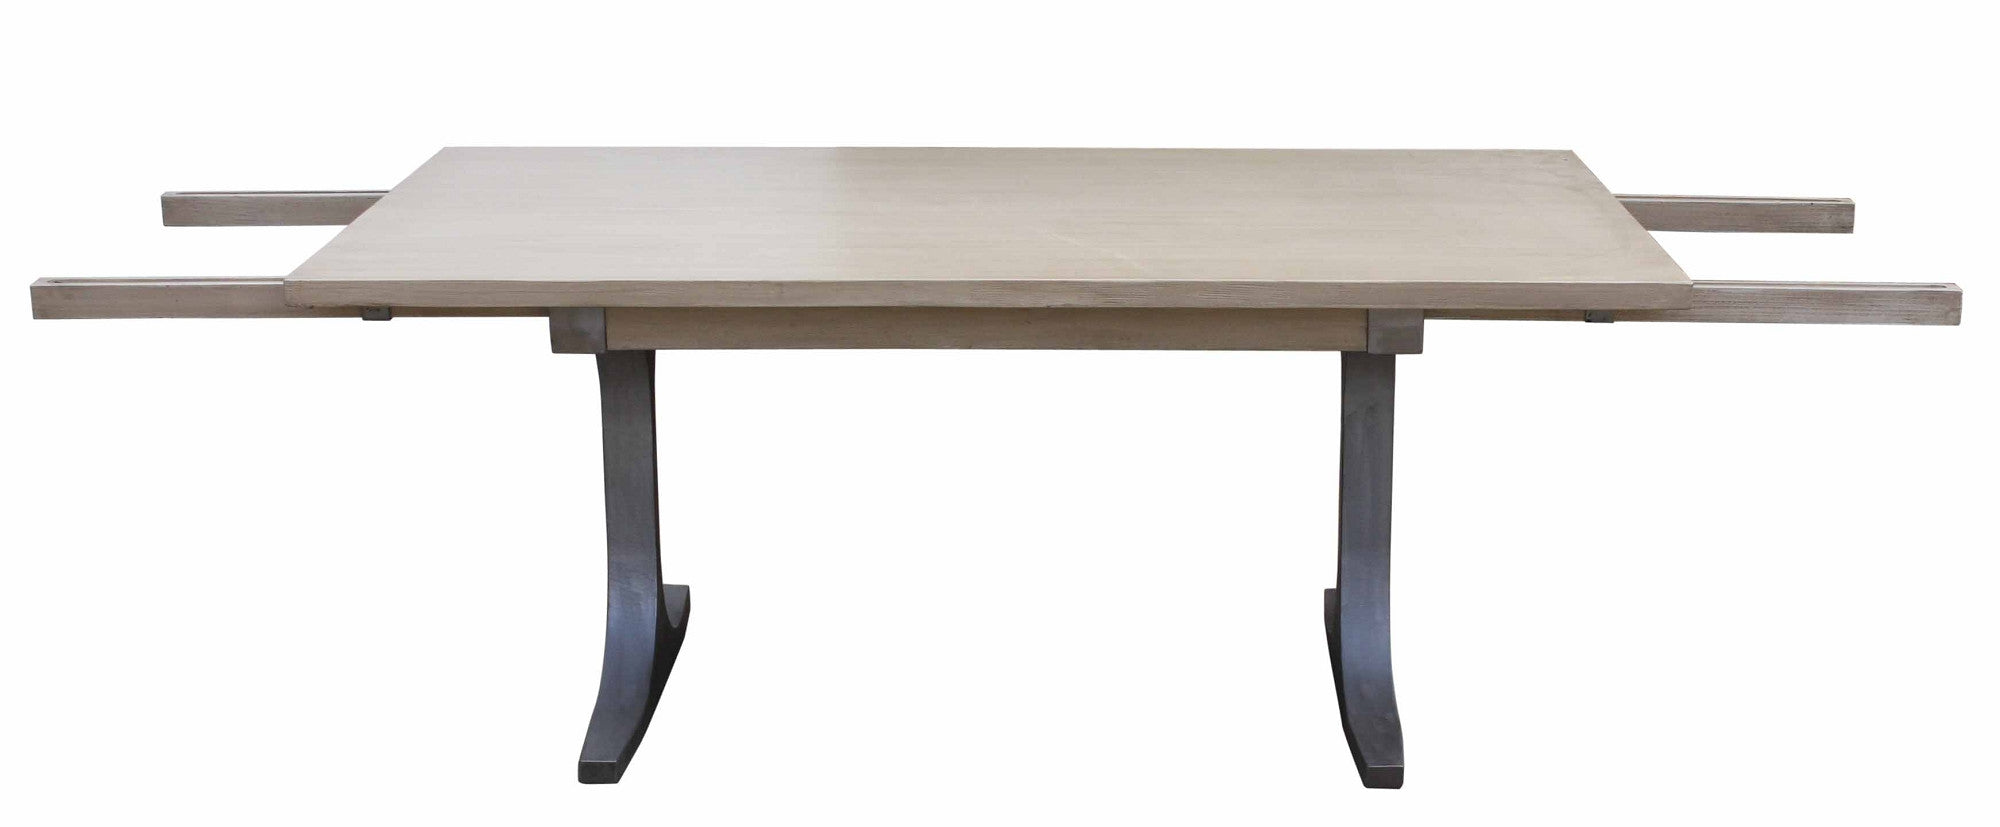 Custom Contemporary Urban Modern Metal And Reclaimed Wood Dining Table